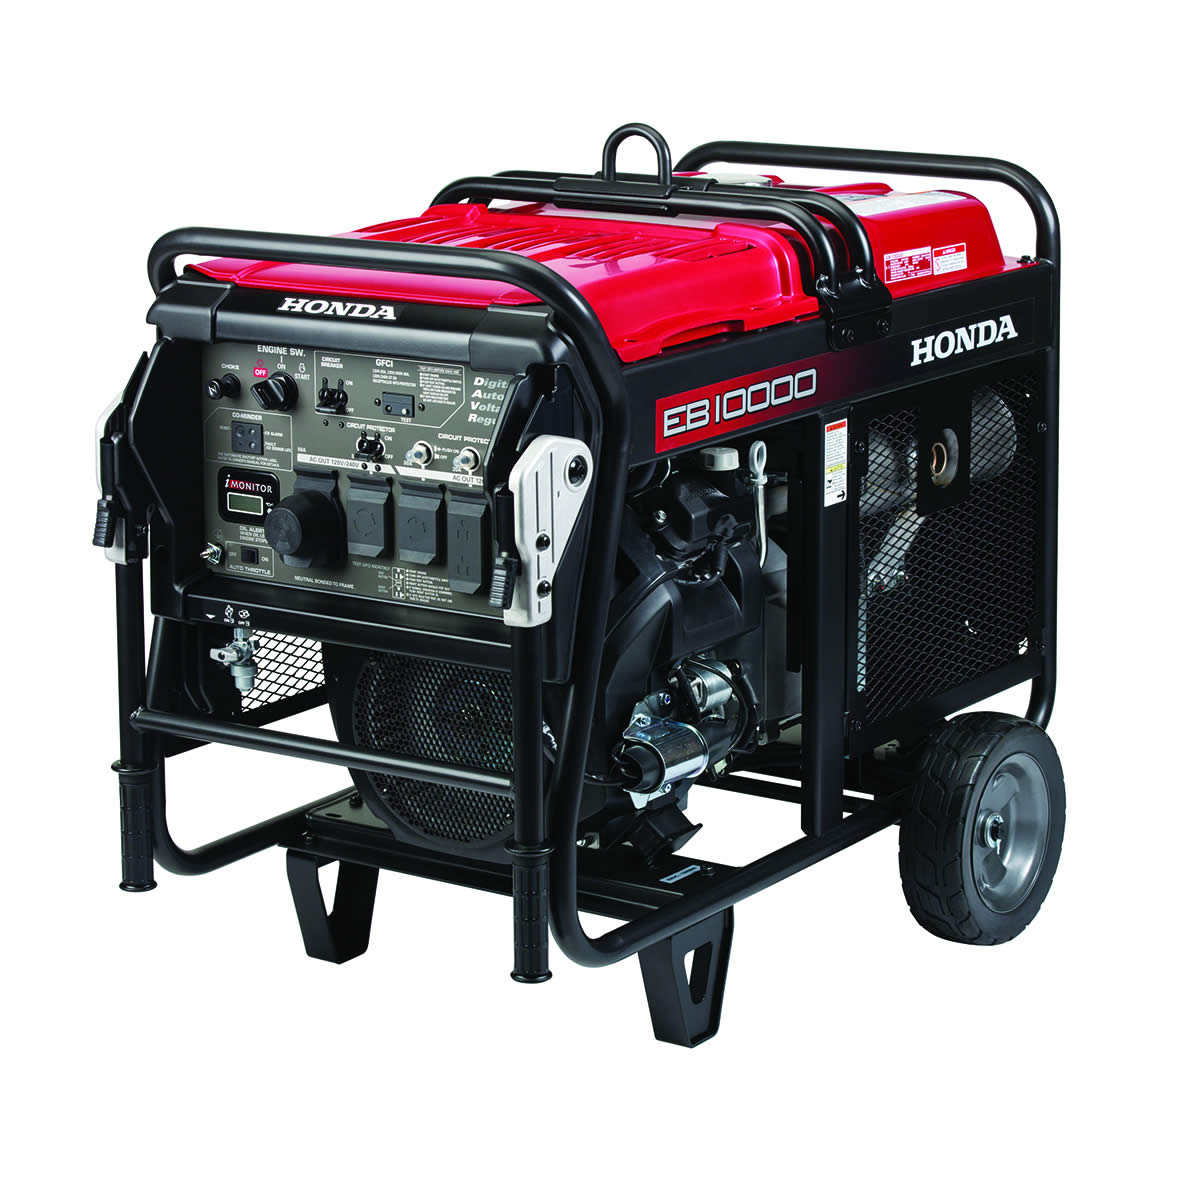 This generator is for temporary power for constructions sites.